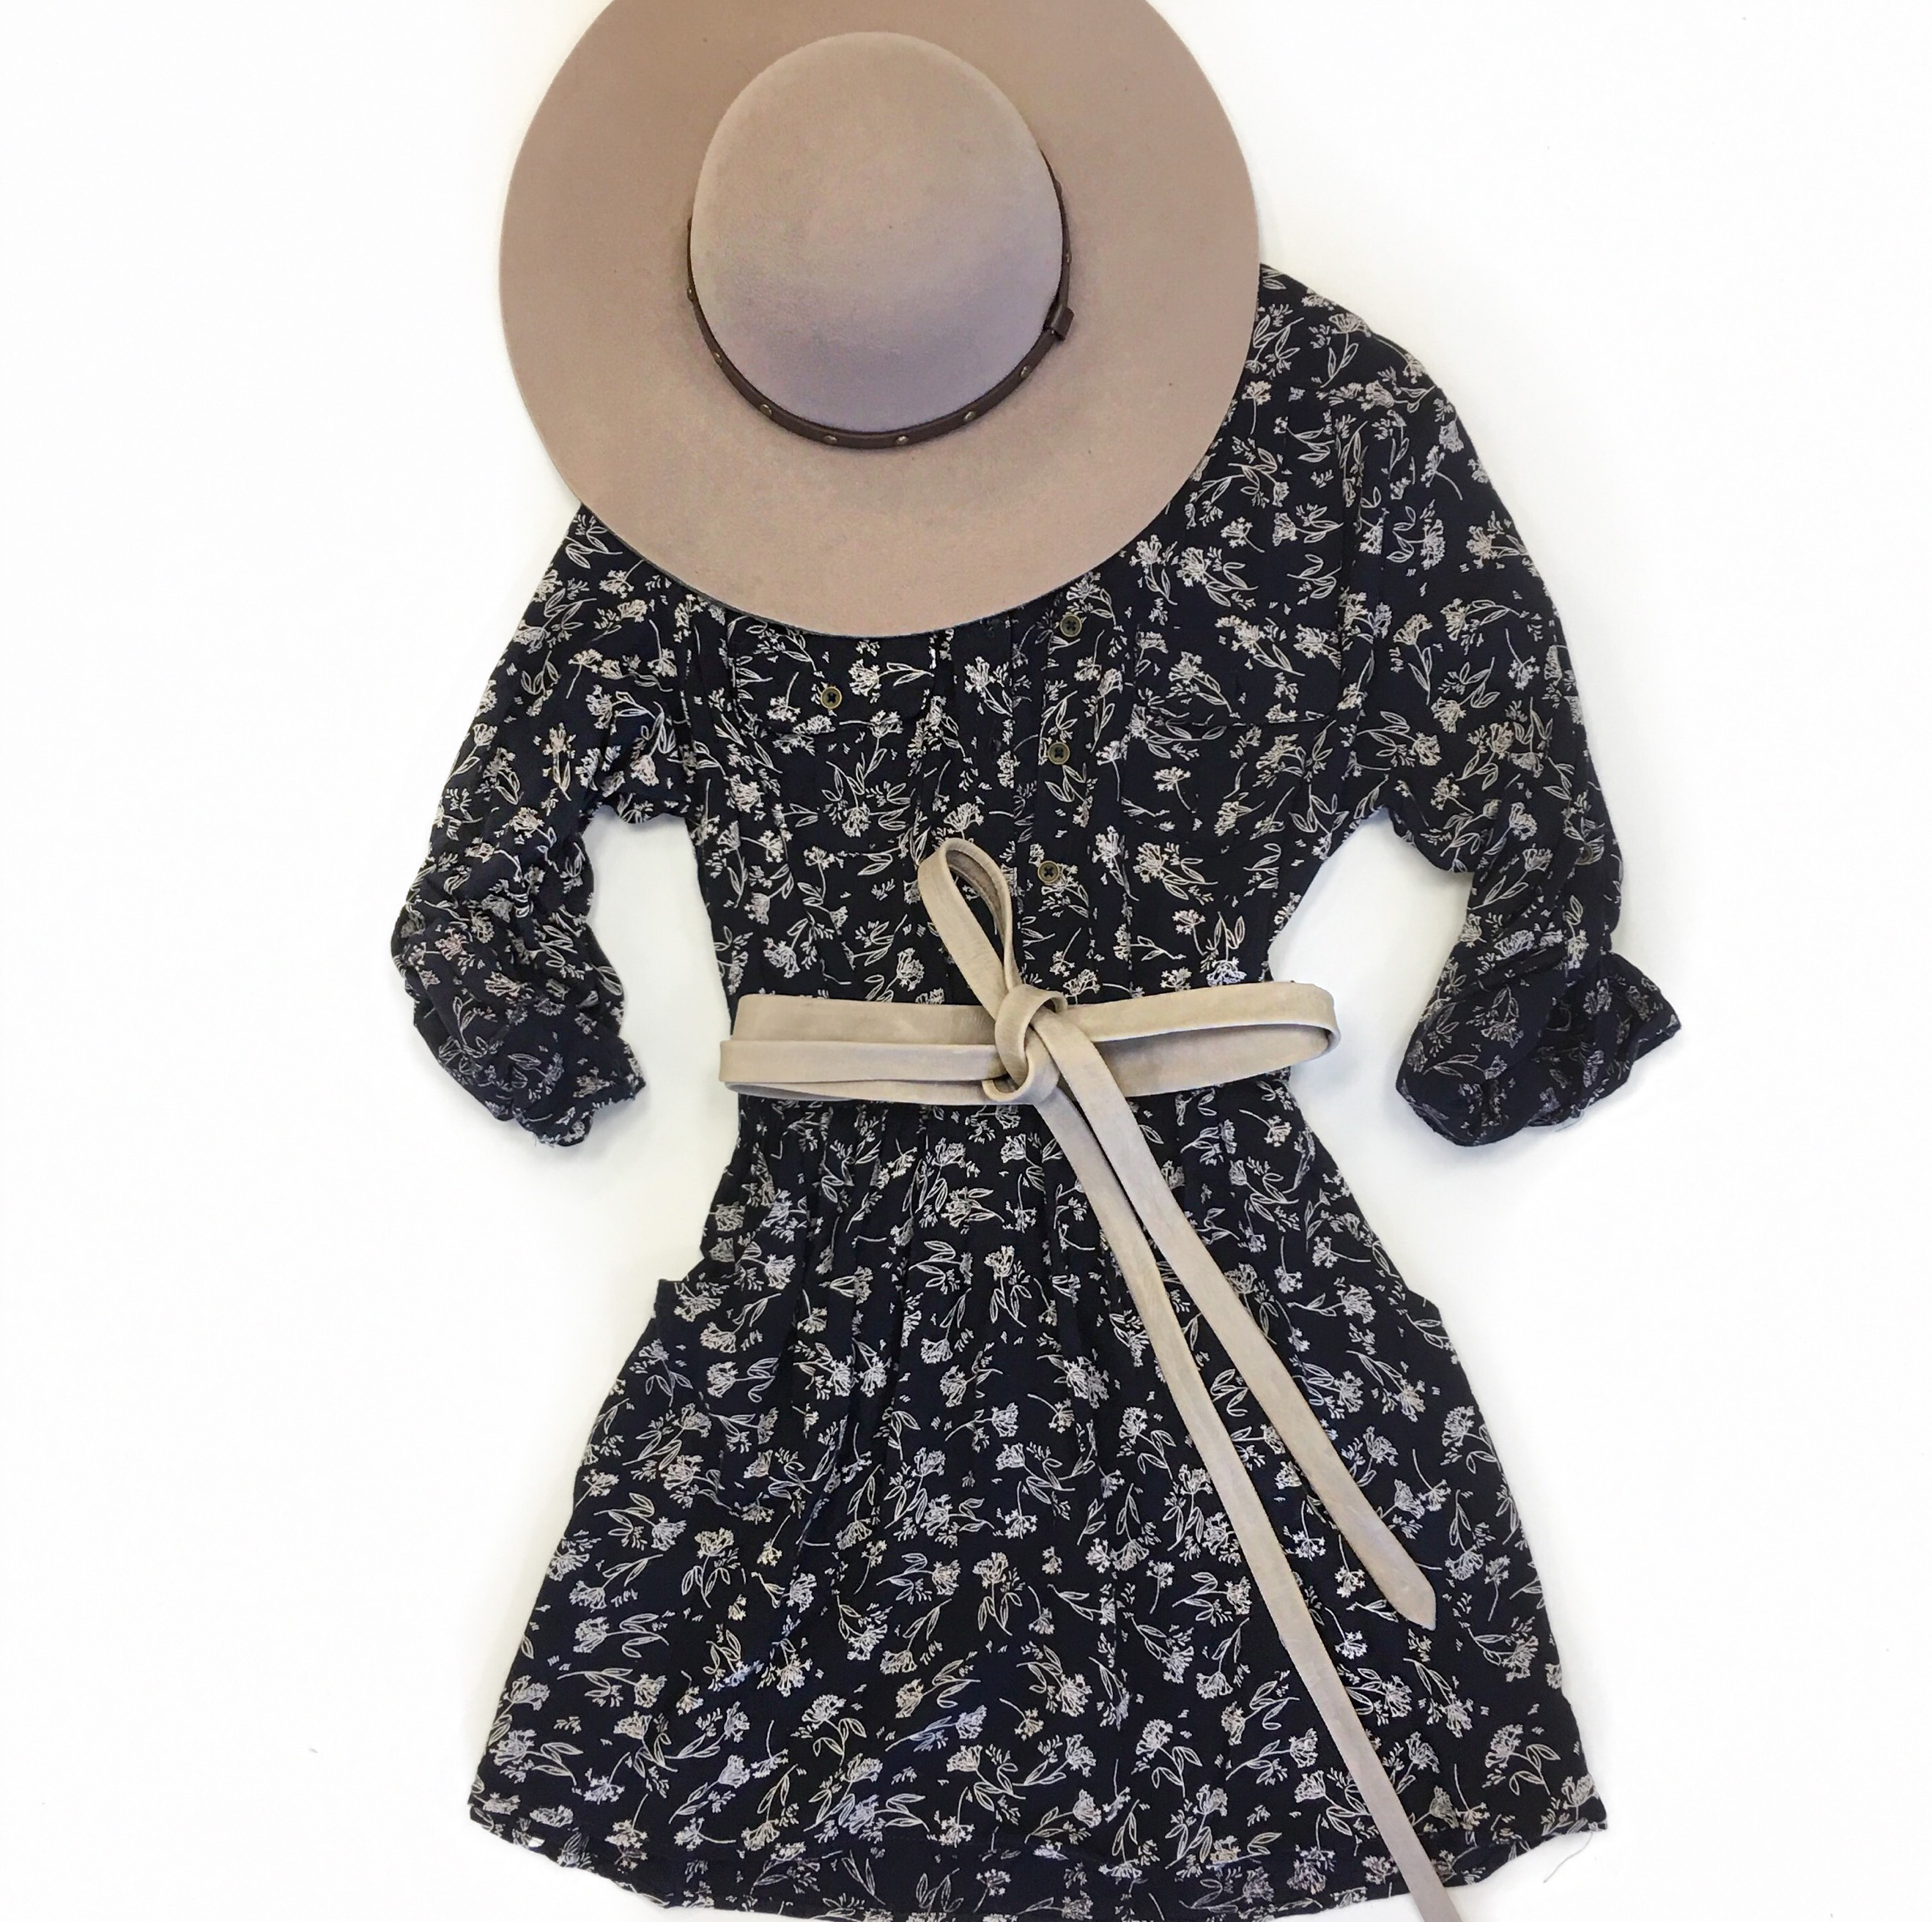 Pinted dress | ADA belt | Beige wrap belt | Floral dress | Hat | ADA Blog | ADA Collection | Genuine leather |